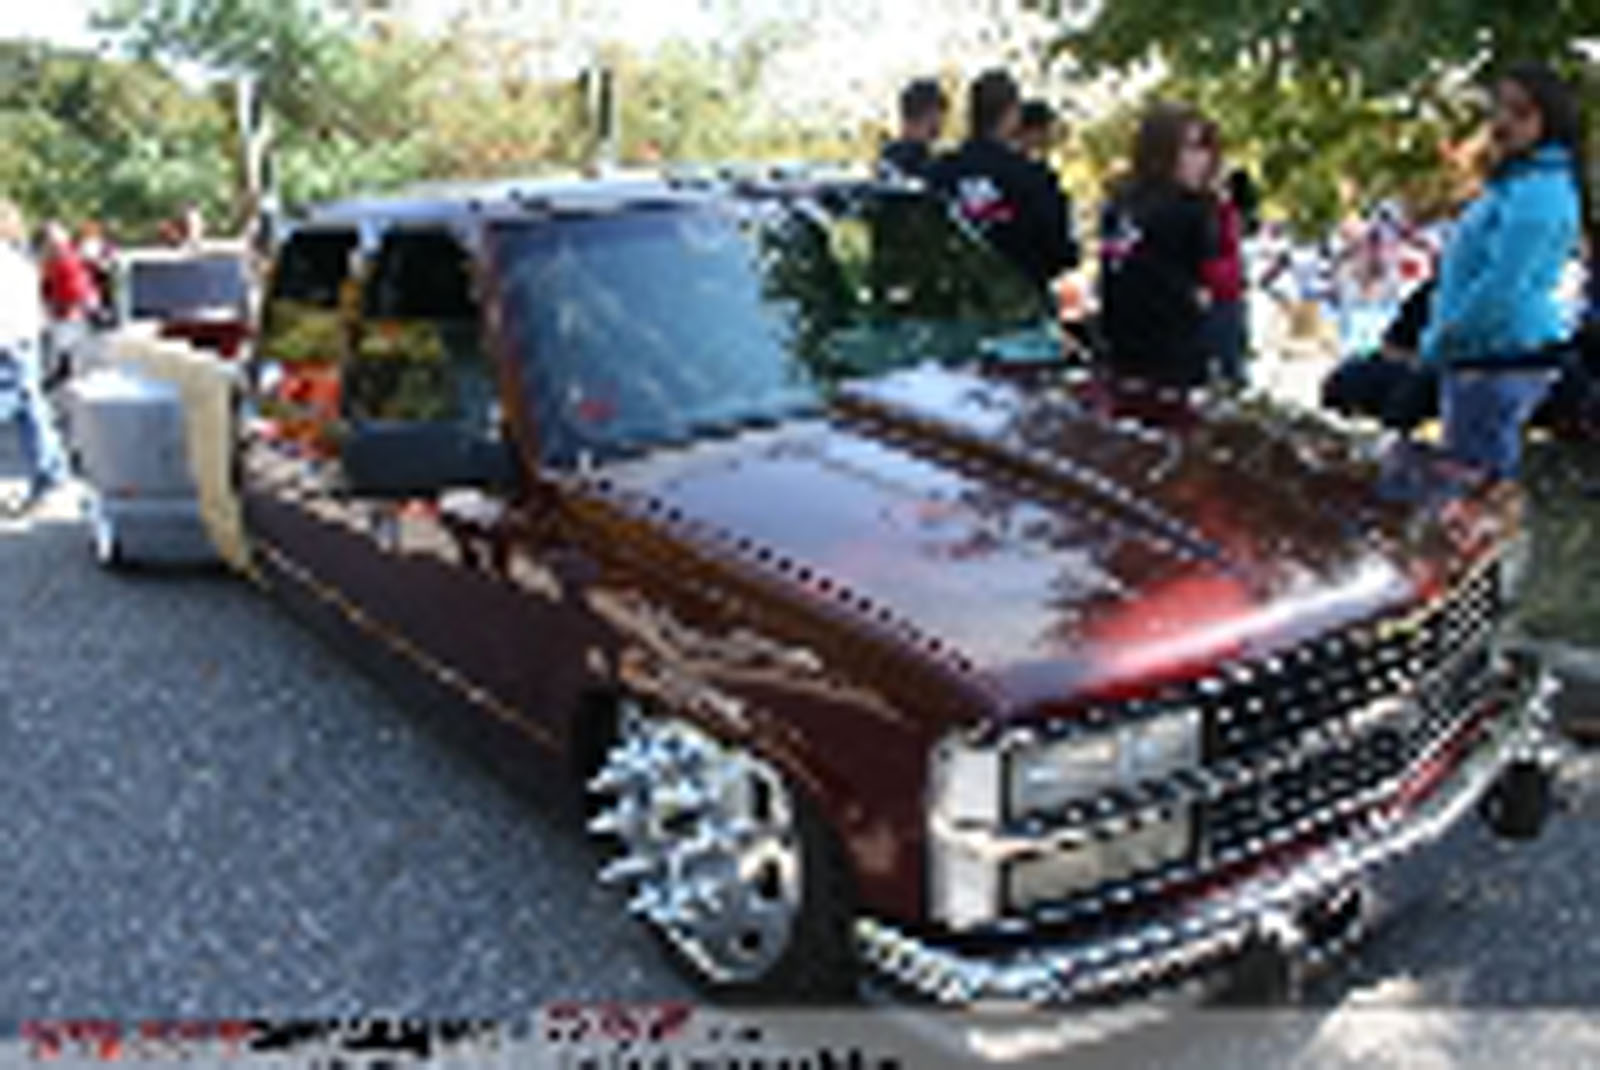 1993 Chevrolet dually [3500] For Sale | Odenton Maryland